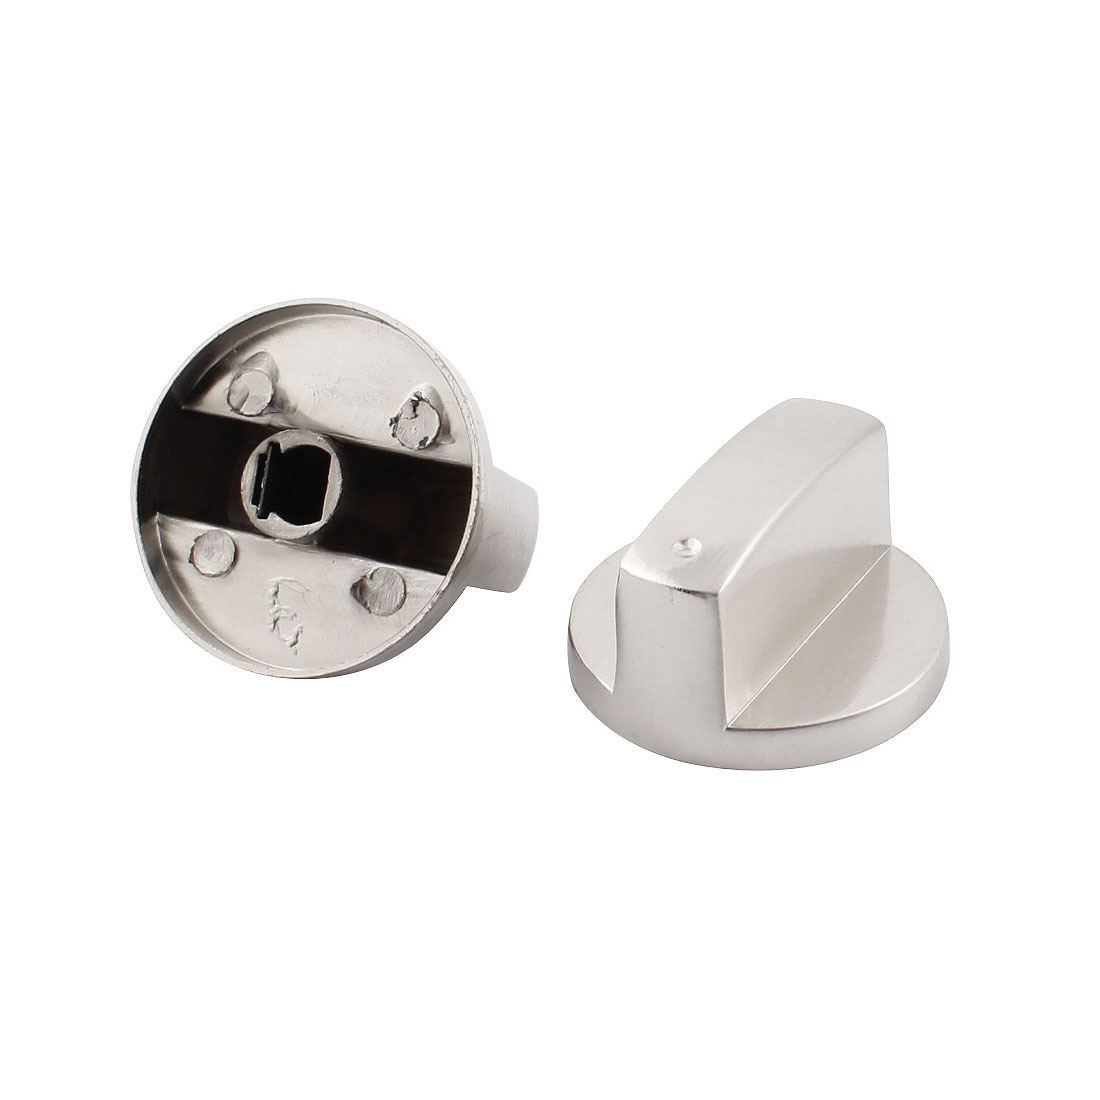 2 Pcs 40mm Dia Stainless Steel Grip Rotary Knob for Gas Stove Oven